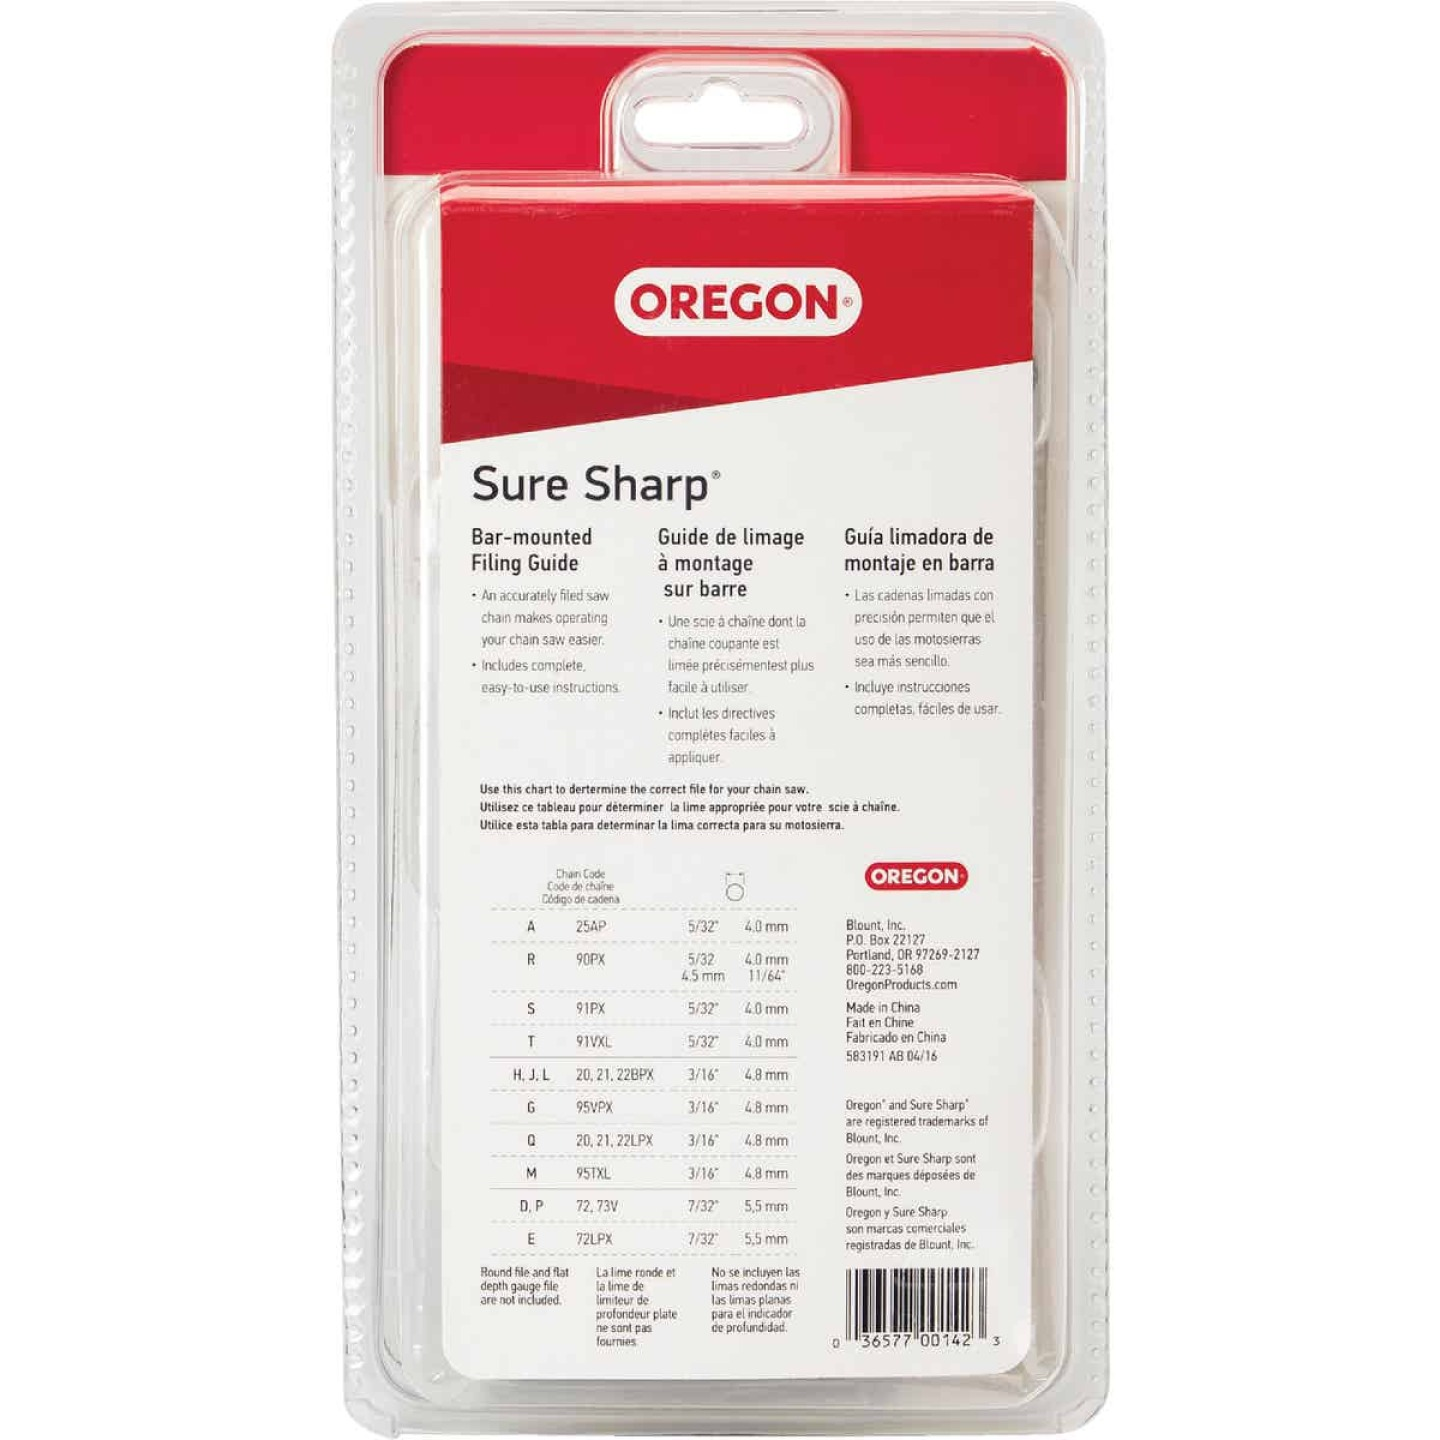 Oregon Sure Sharp Saw Chain Sharpener Image 2